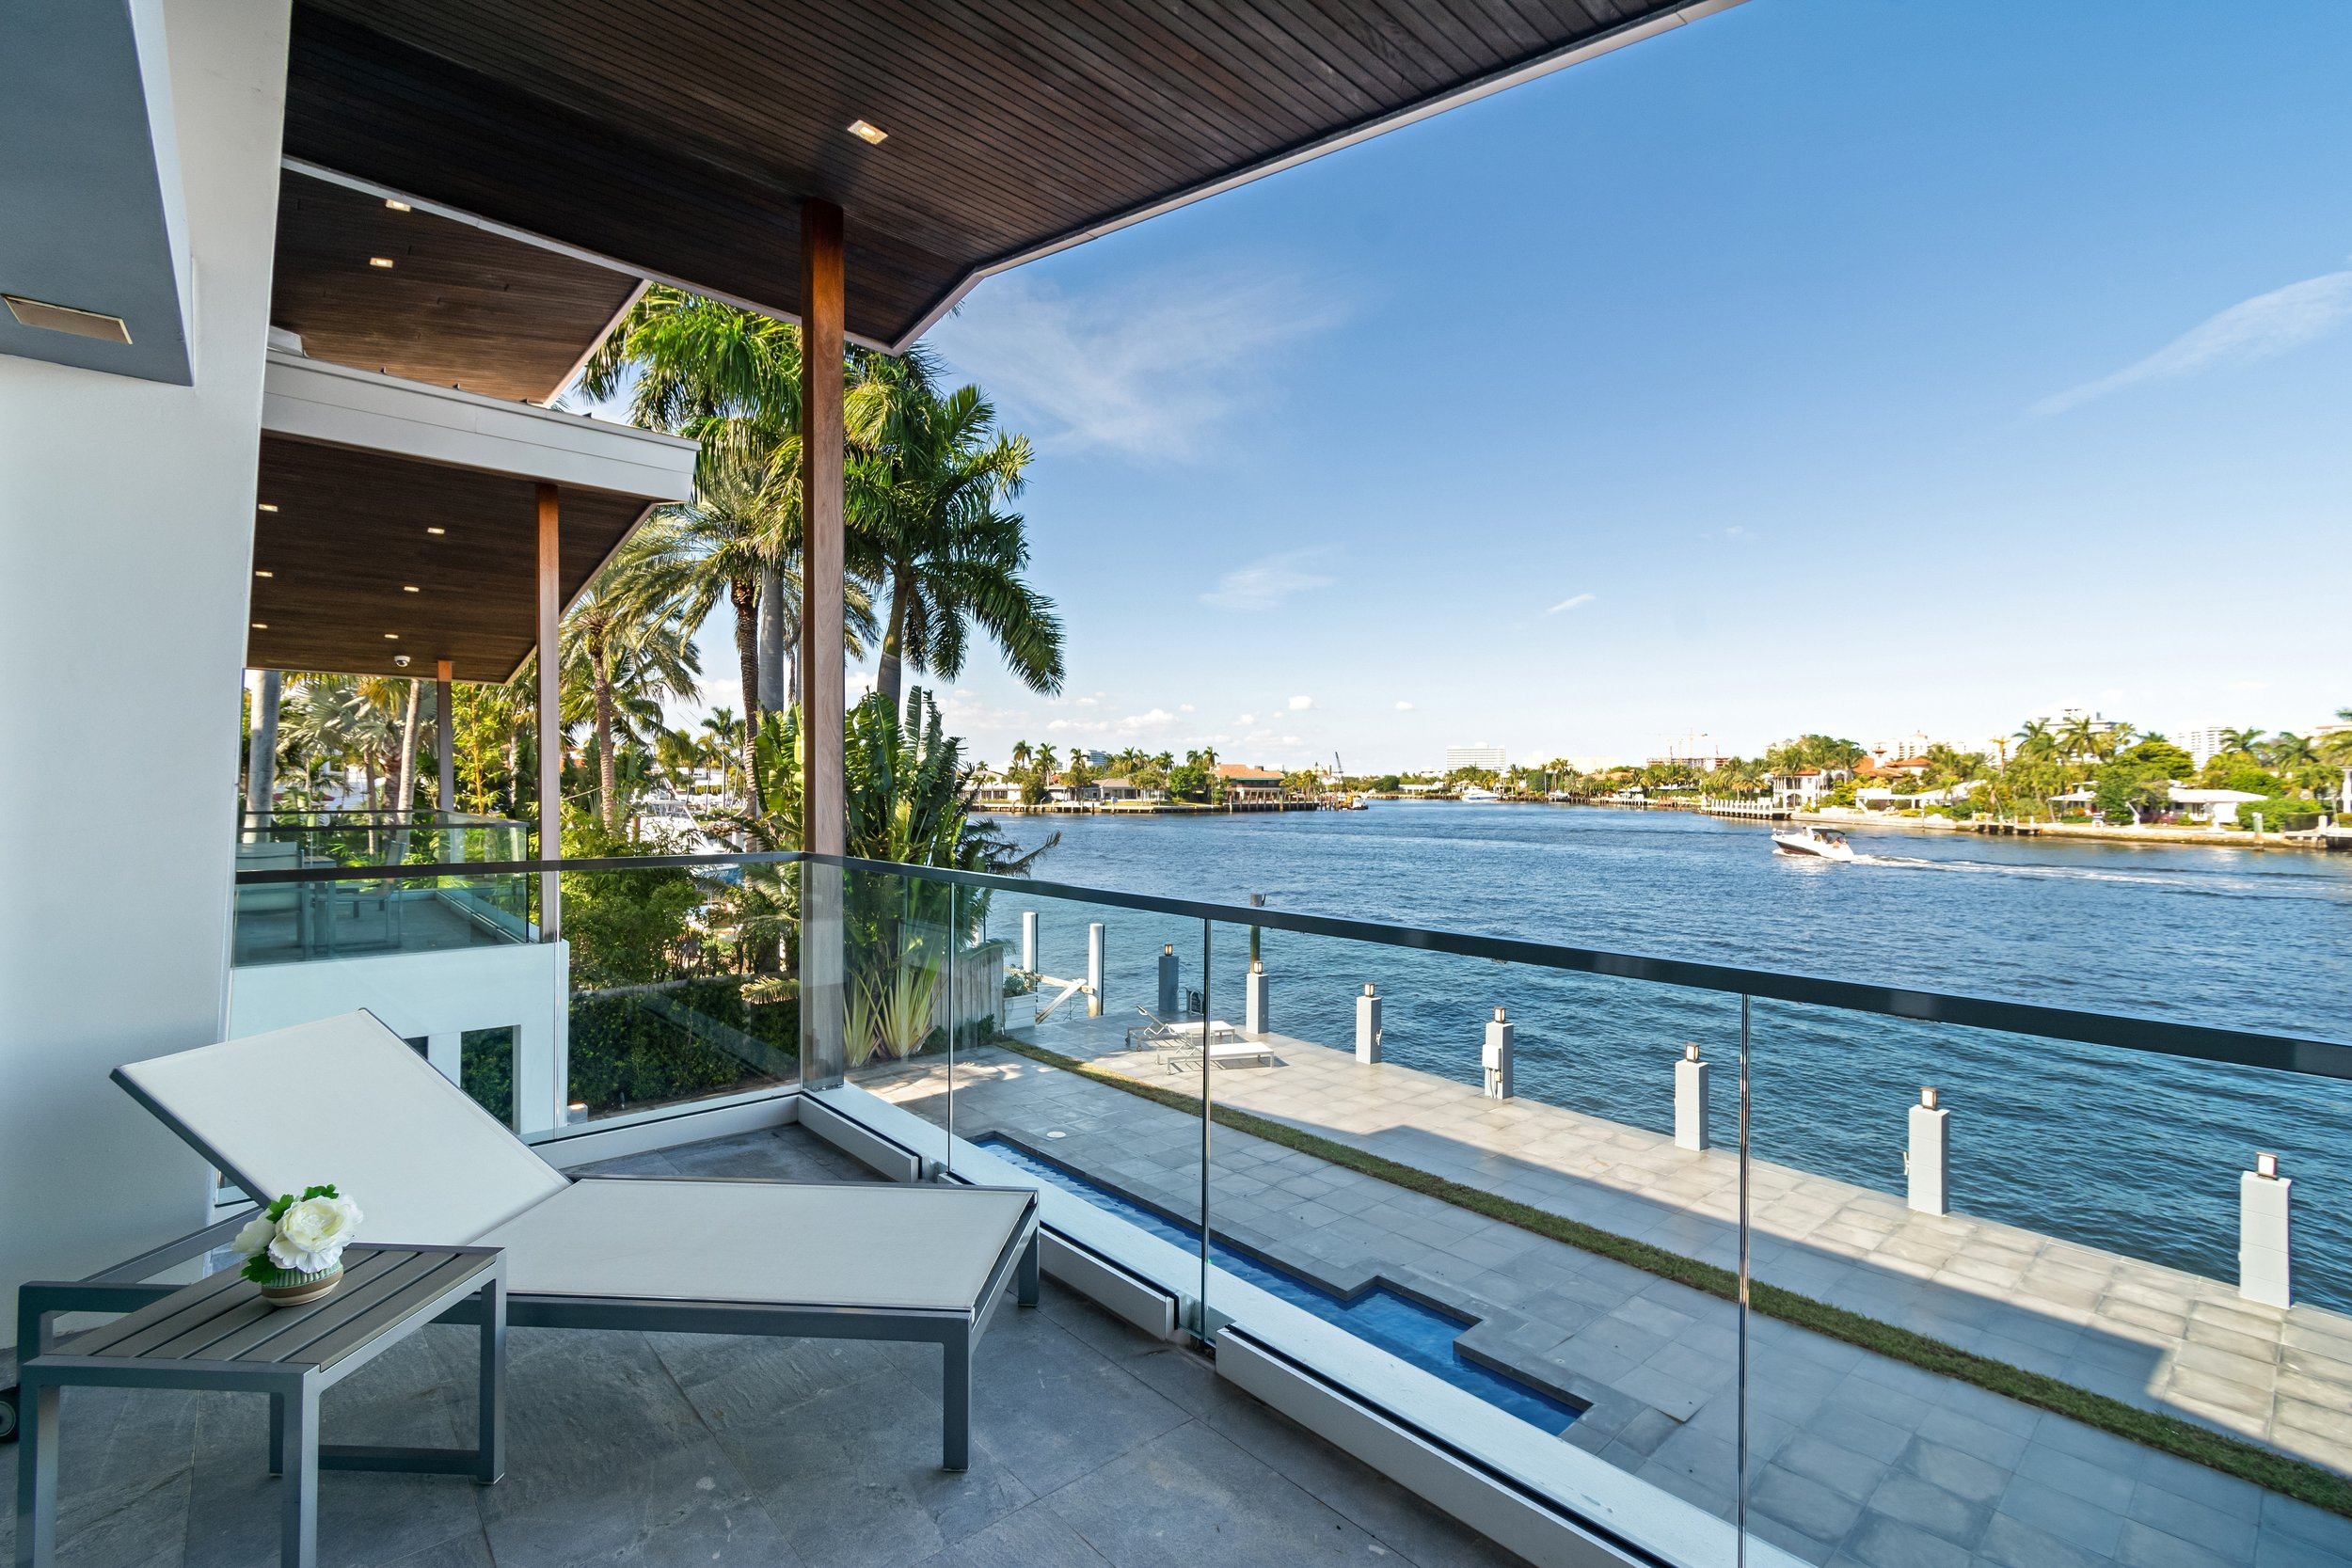 Check Out This Frank Lloyd Wright Inspired Waterfront Home In Fort Lauderdale Asking $5 Million